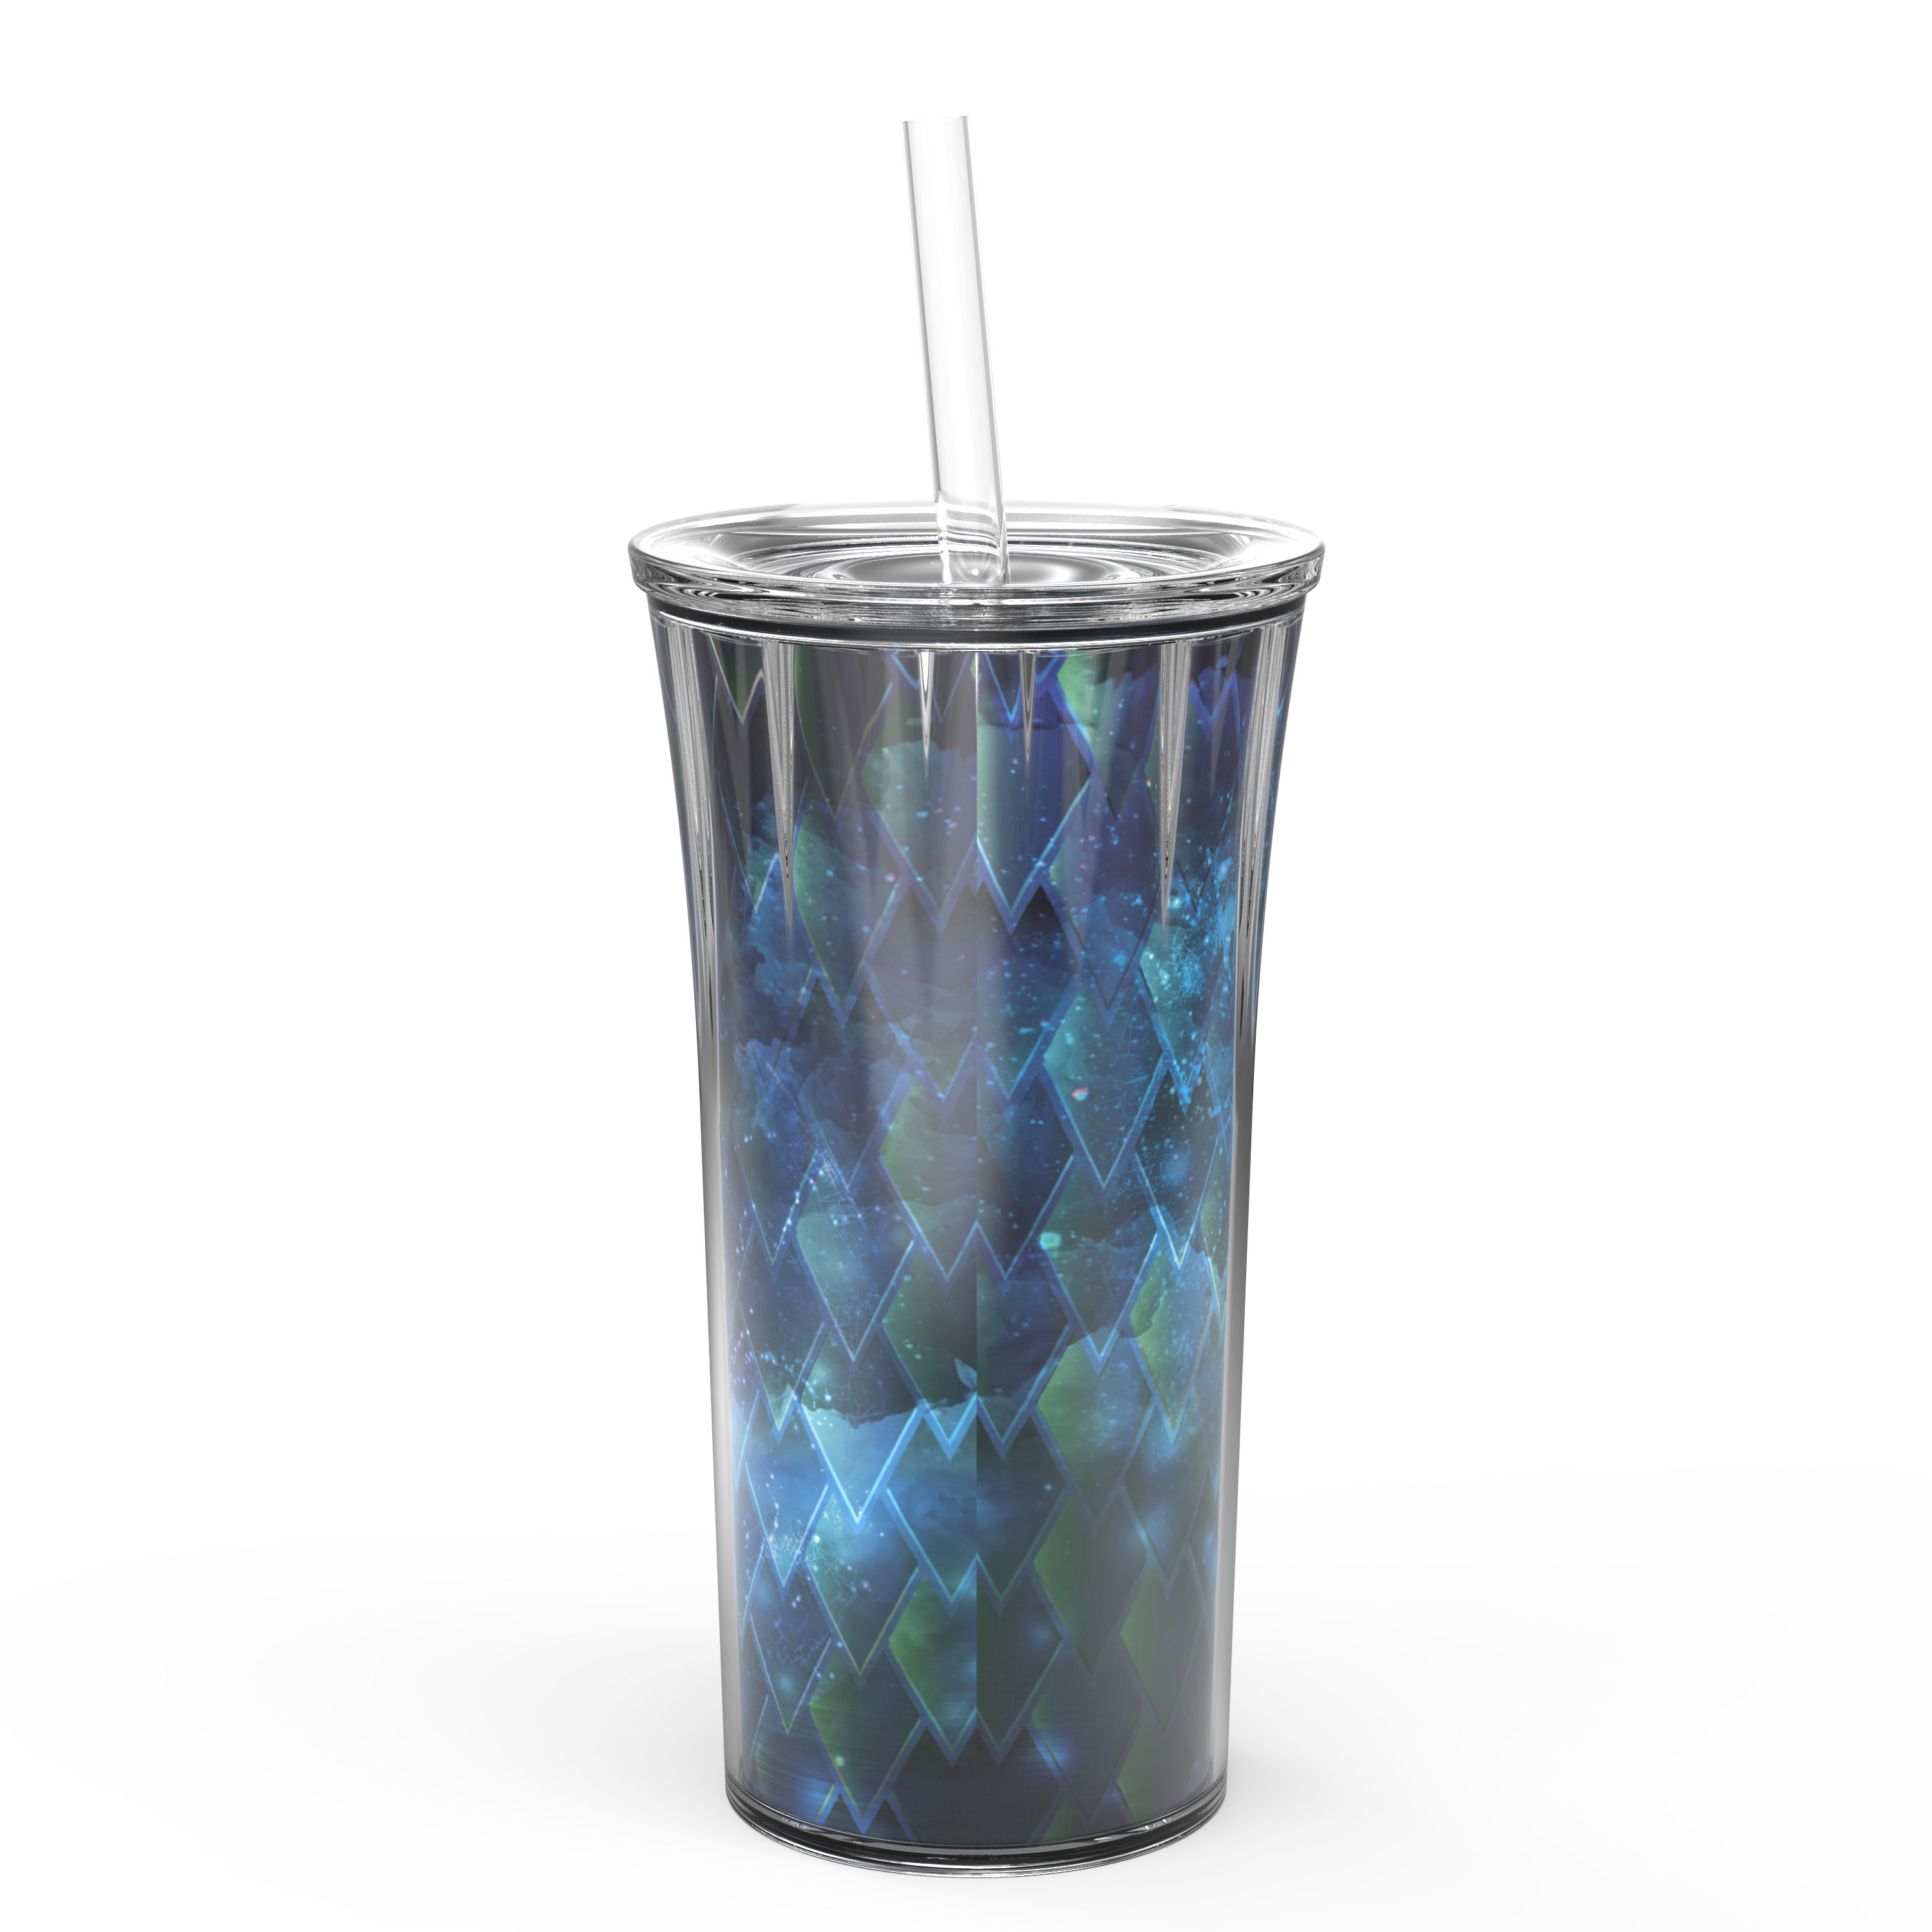 Dreamworks Animation 20 ounce Insulated Tumbler, How to Train Your Dragon 3 slideshow image 4